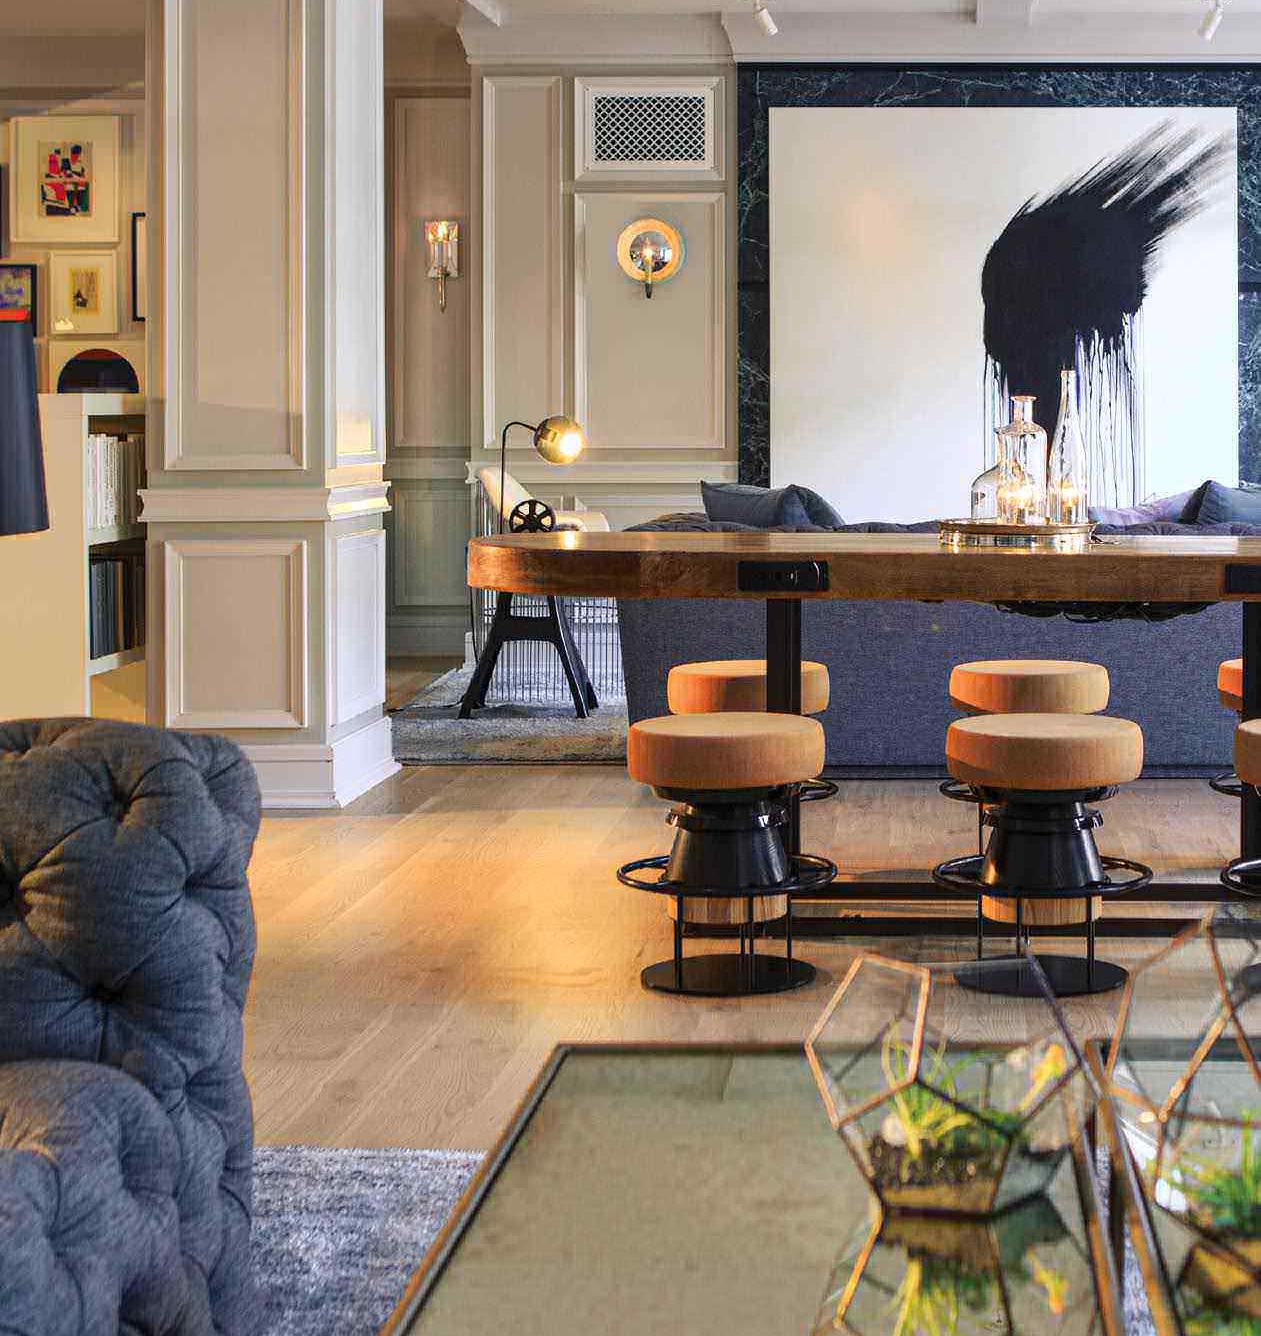 Hip Is Reshaping the Hotel Experience